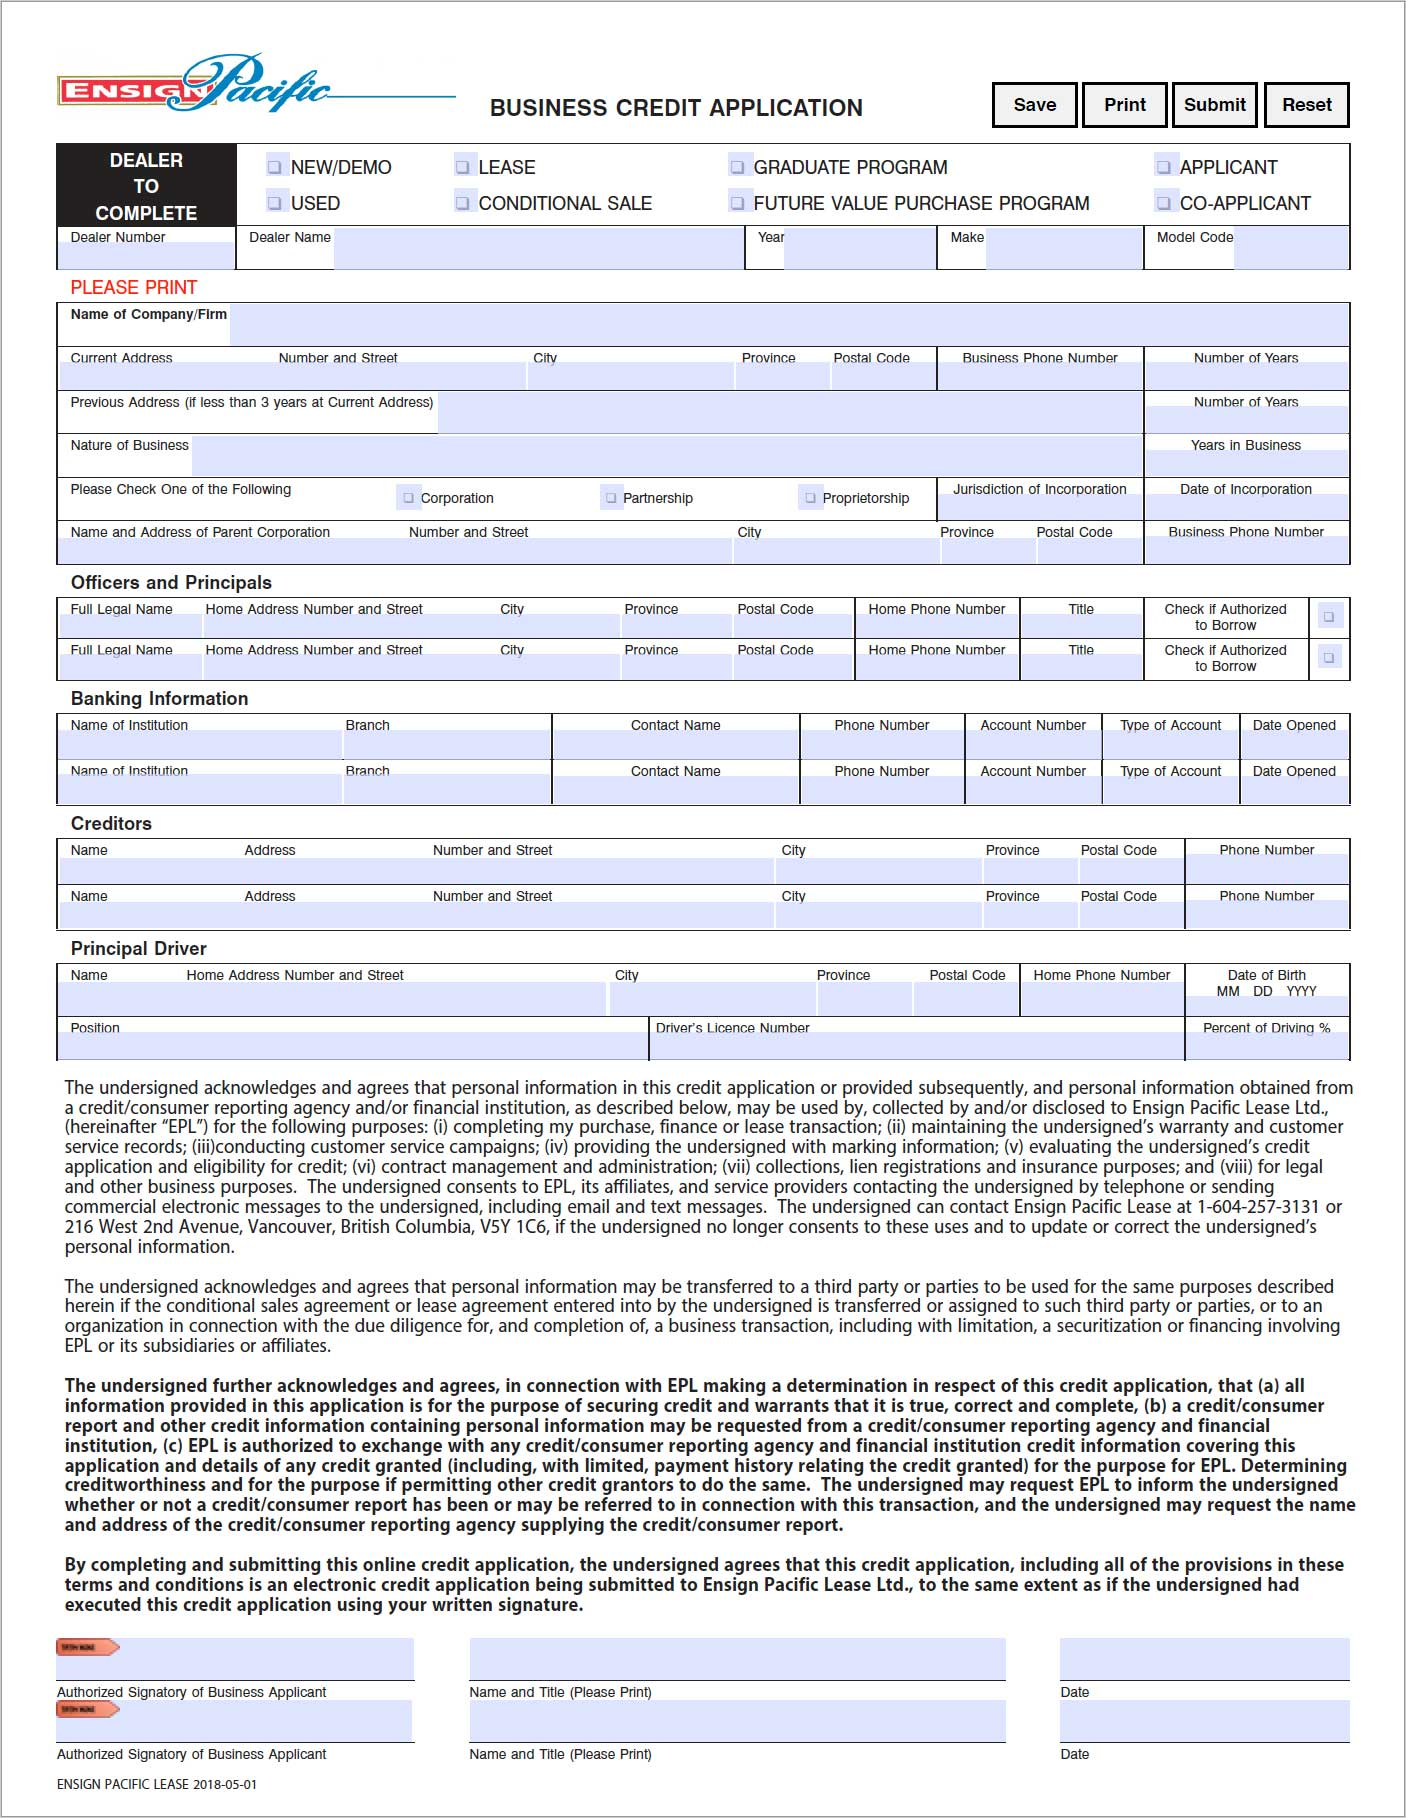 Ensign-Pacific-Lease-Business-Credit-Application Finance